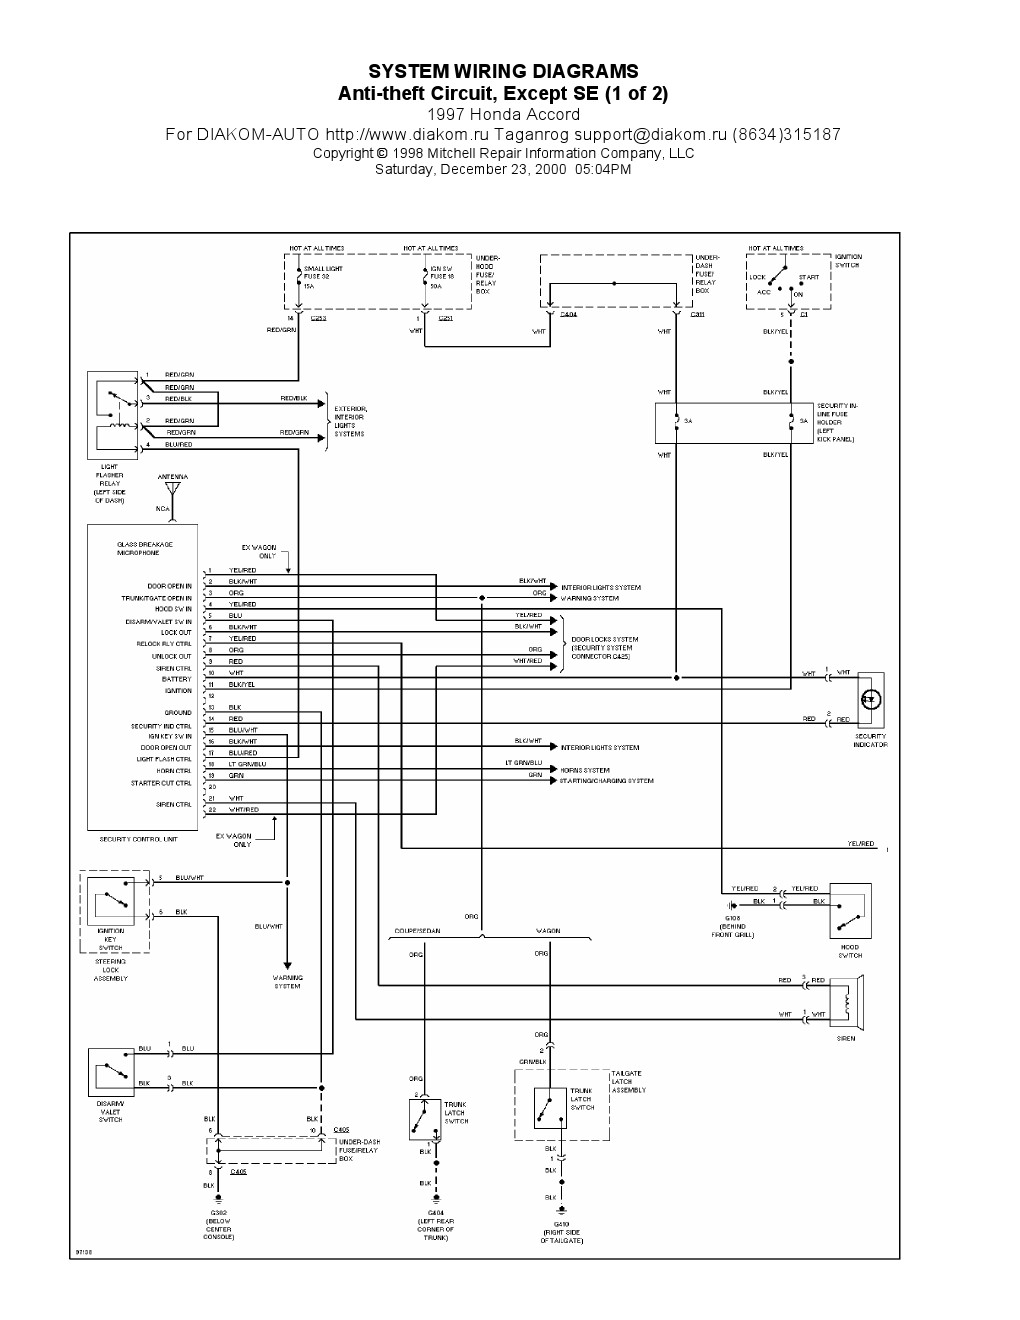 small resolution of 1997 honda accord antitheft circuit system wiring diagrams